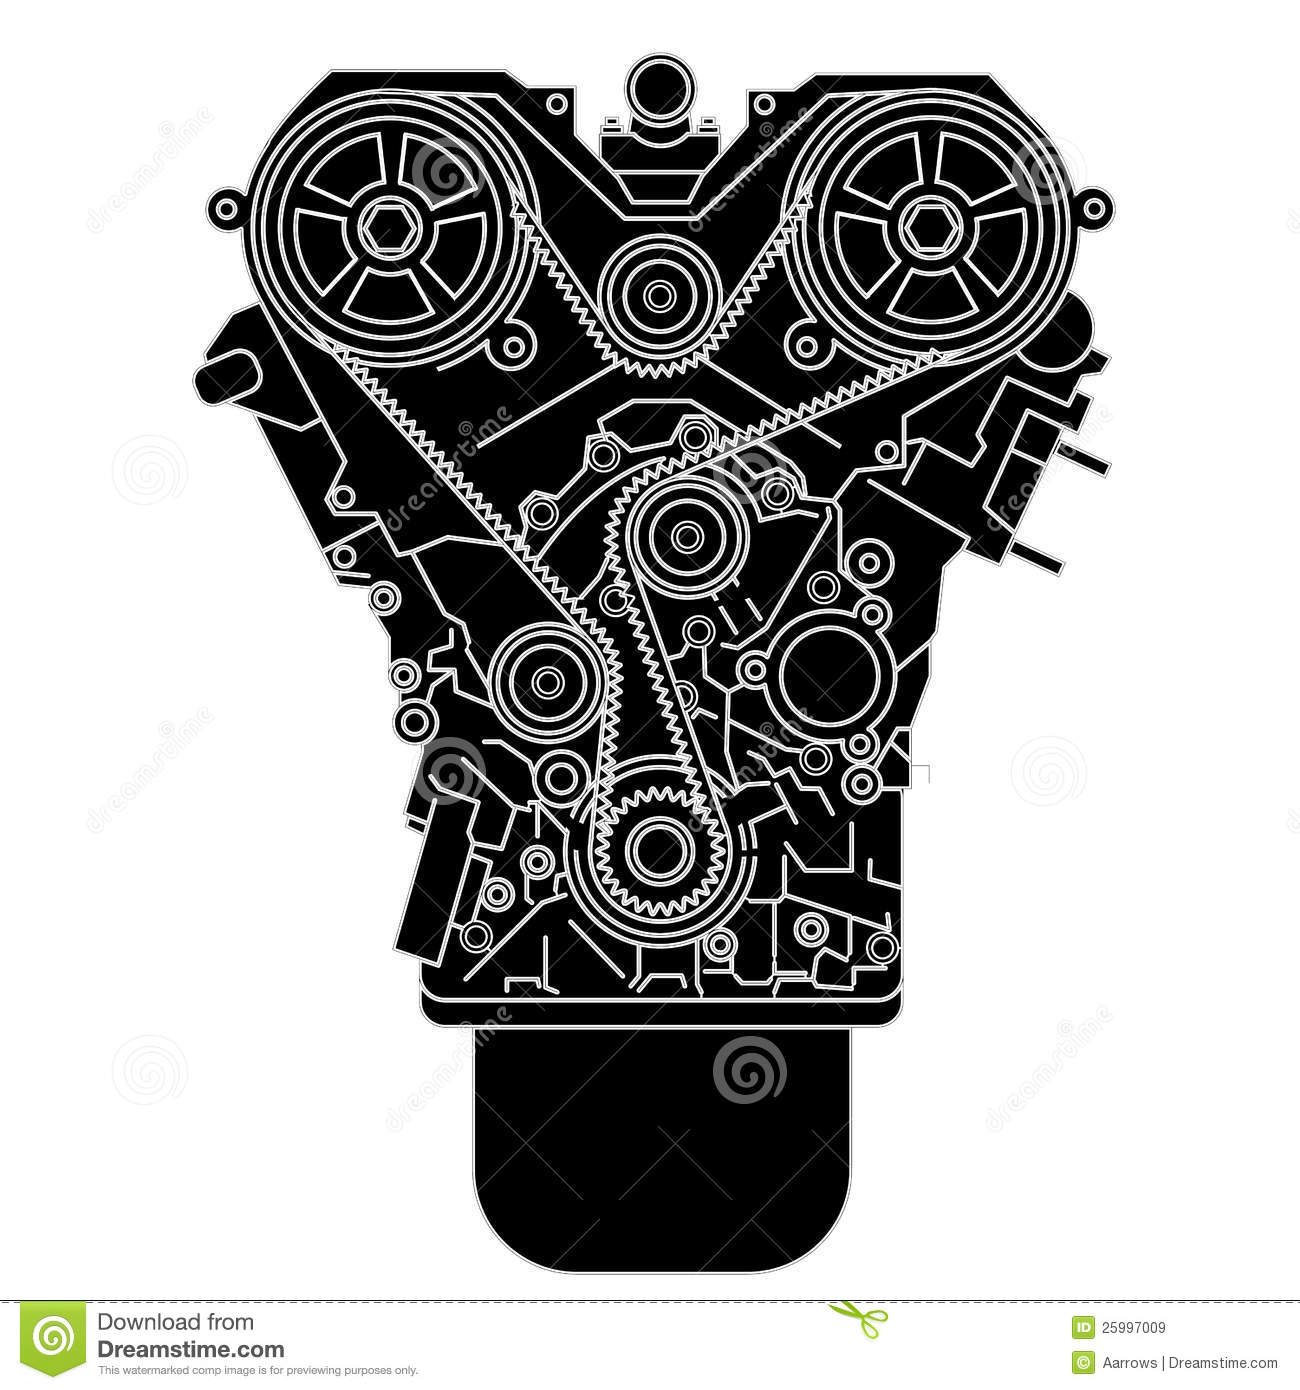 hight resolution of internal combustion engine as seen from in front